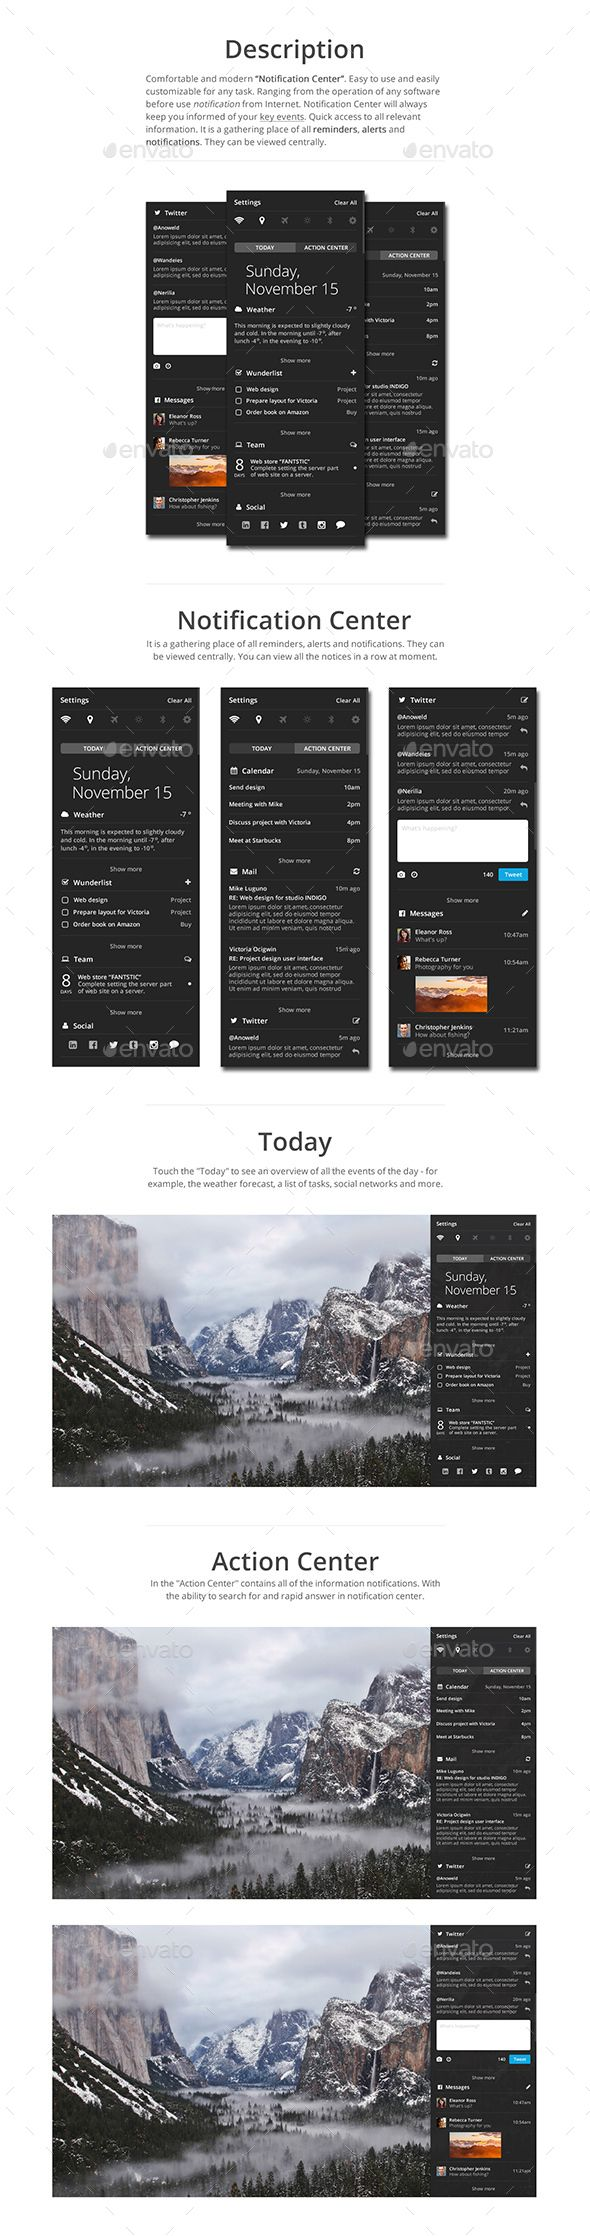 user interface design document template - 1000 images about user interface templates on pinterest